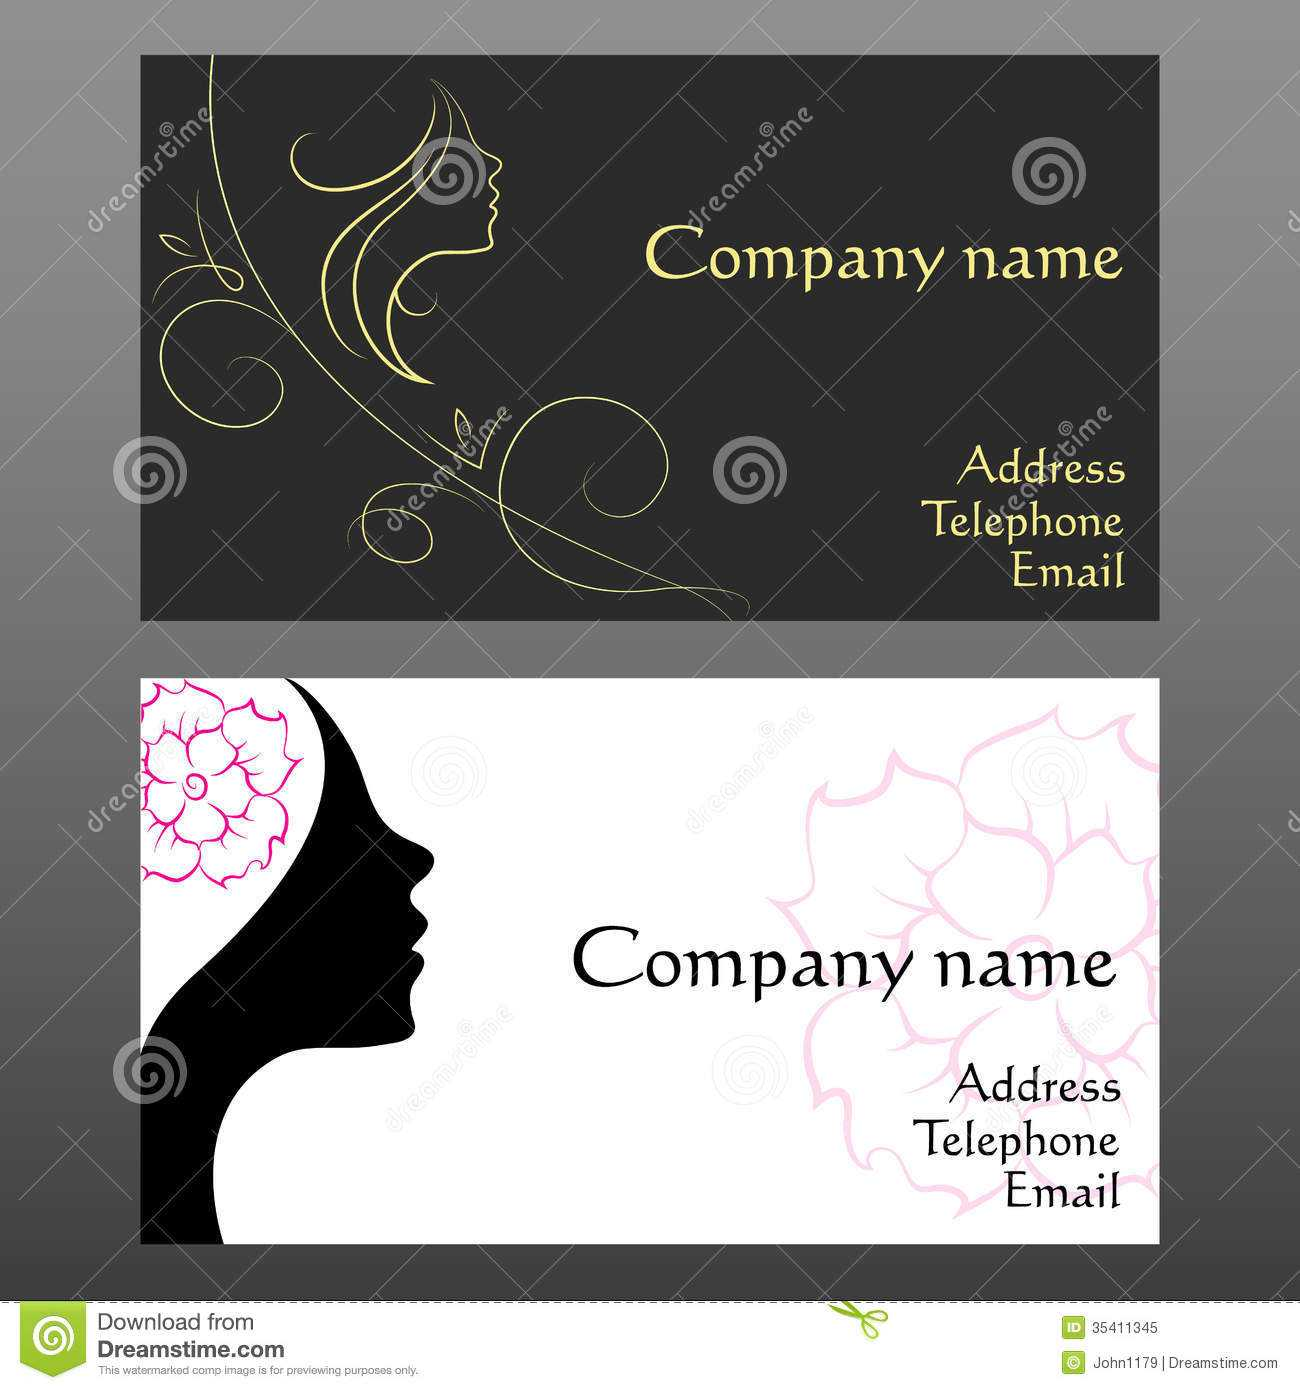 Hairdresser Business Card Templates Free - Zohre In Hairdresser Business Card Templates Free